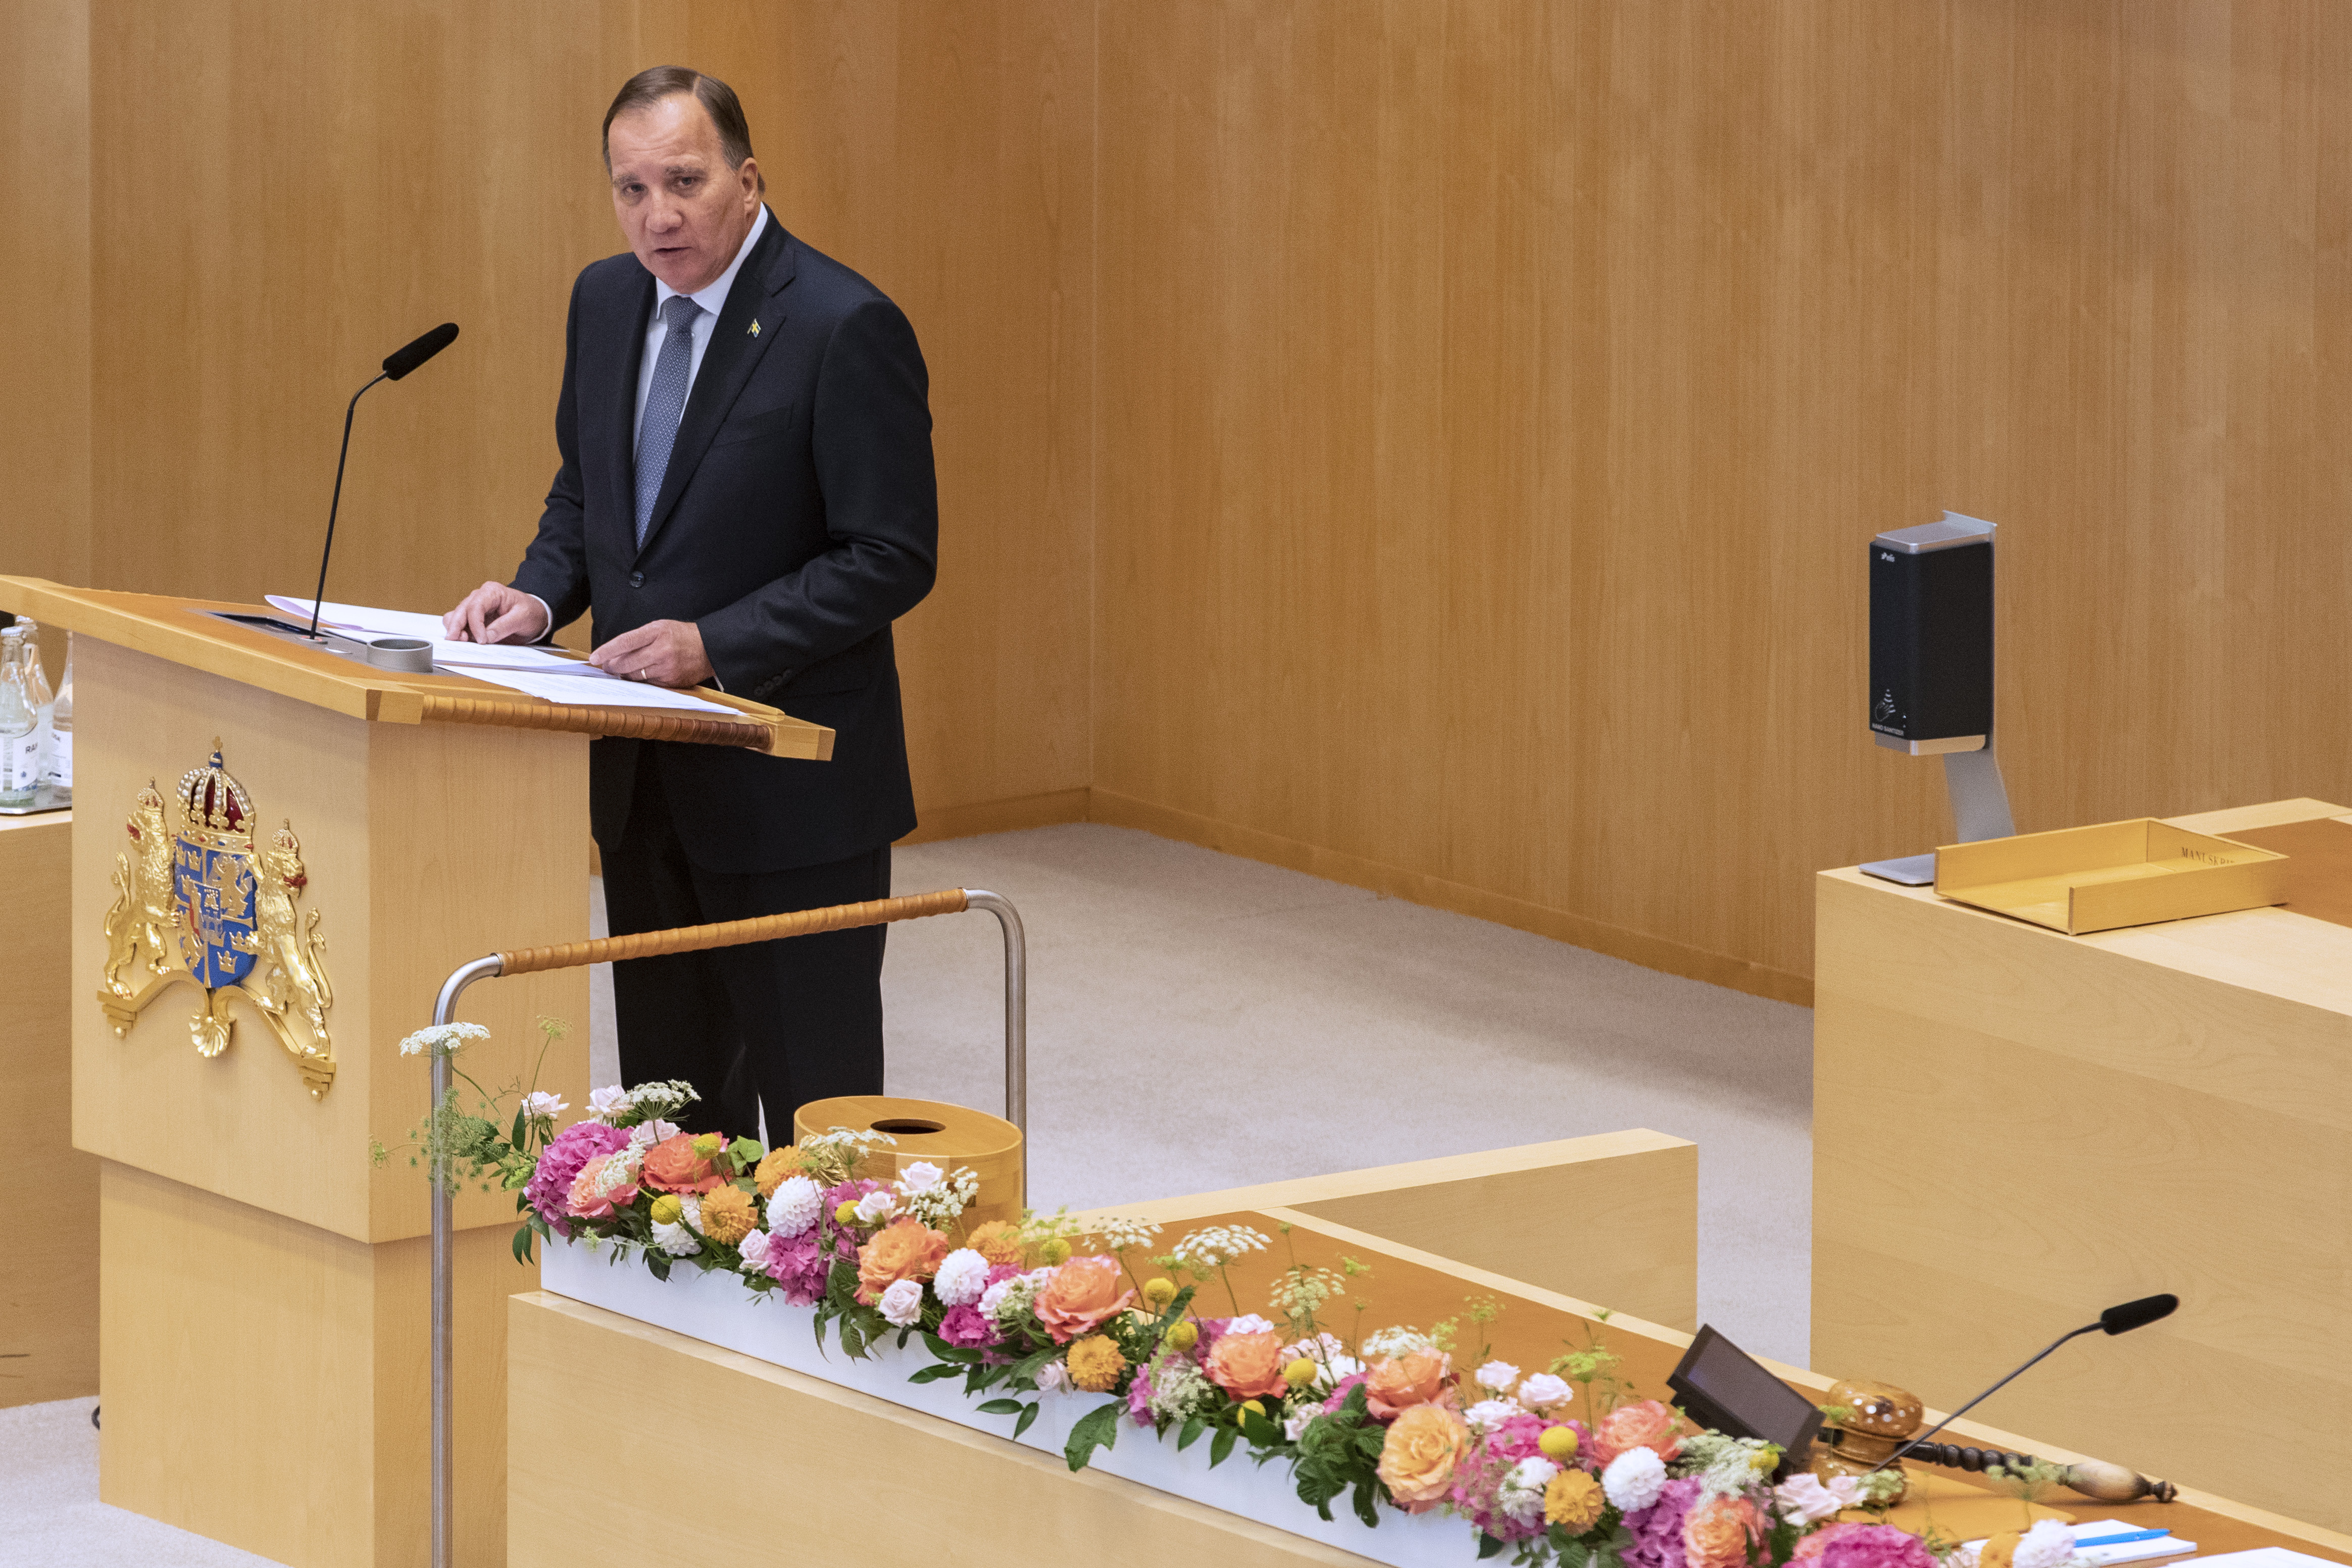 Stefan Löfven during the statement of government policy.